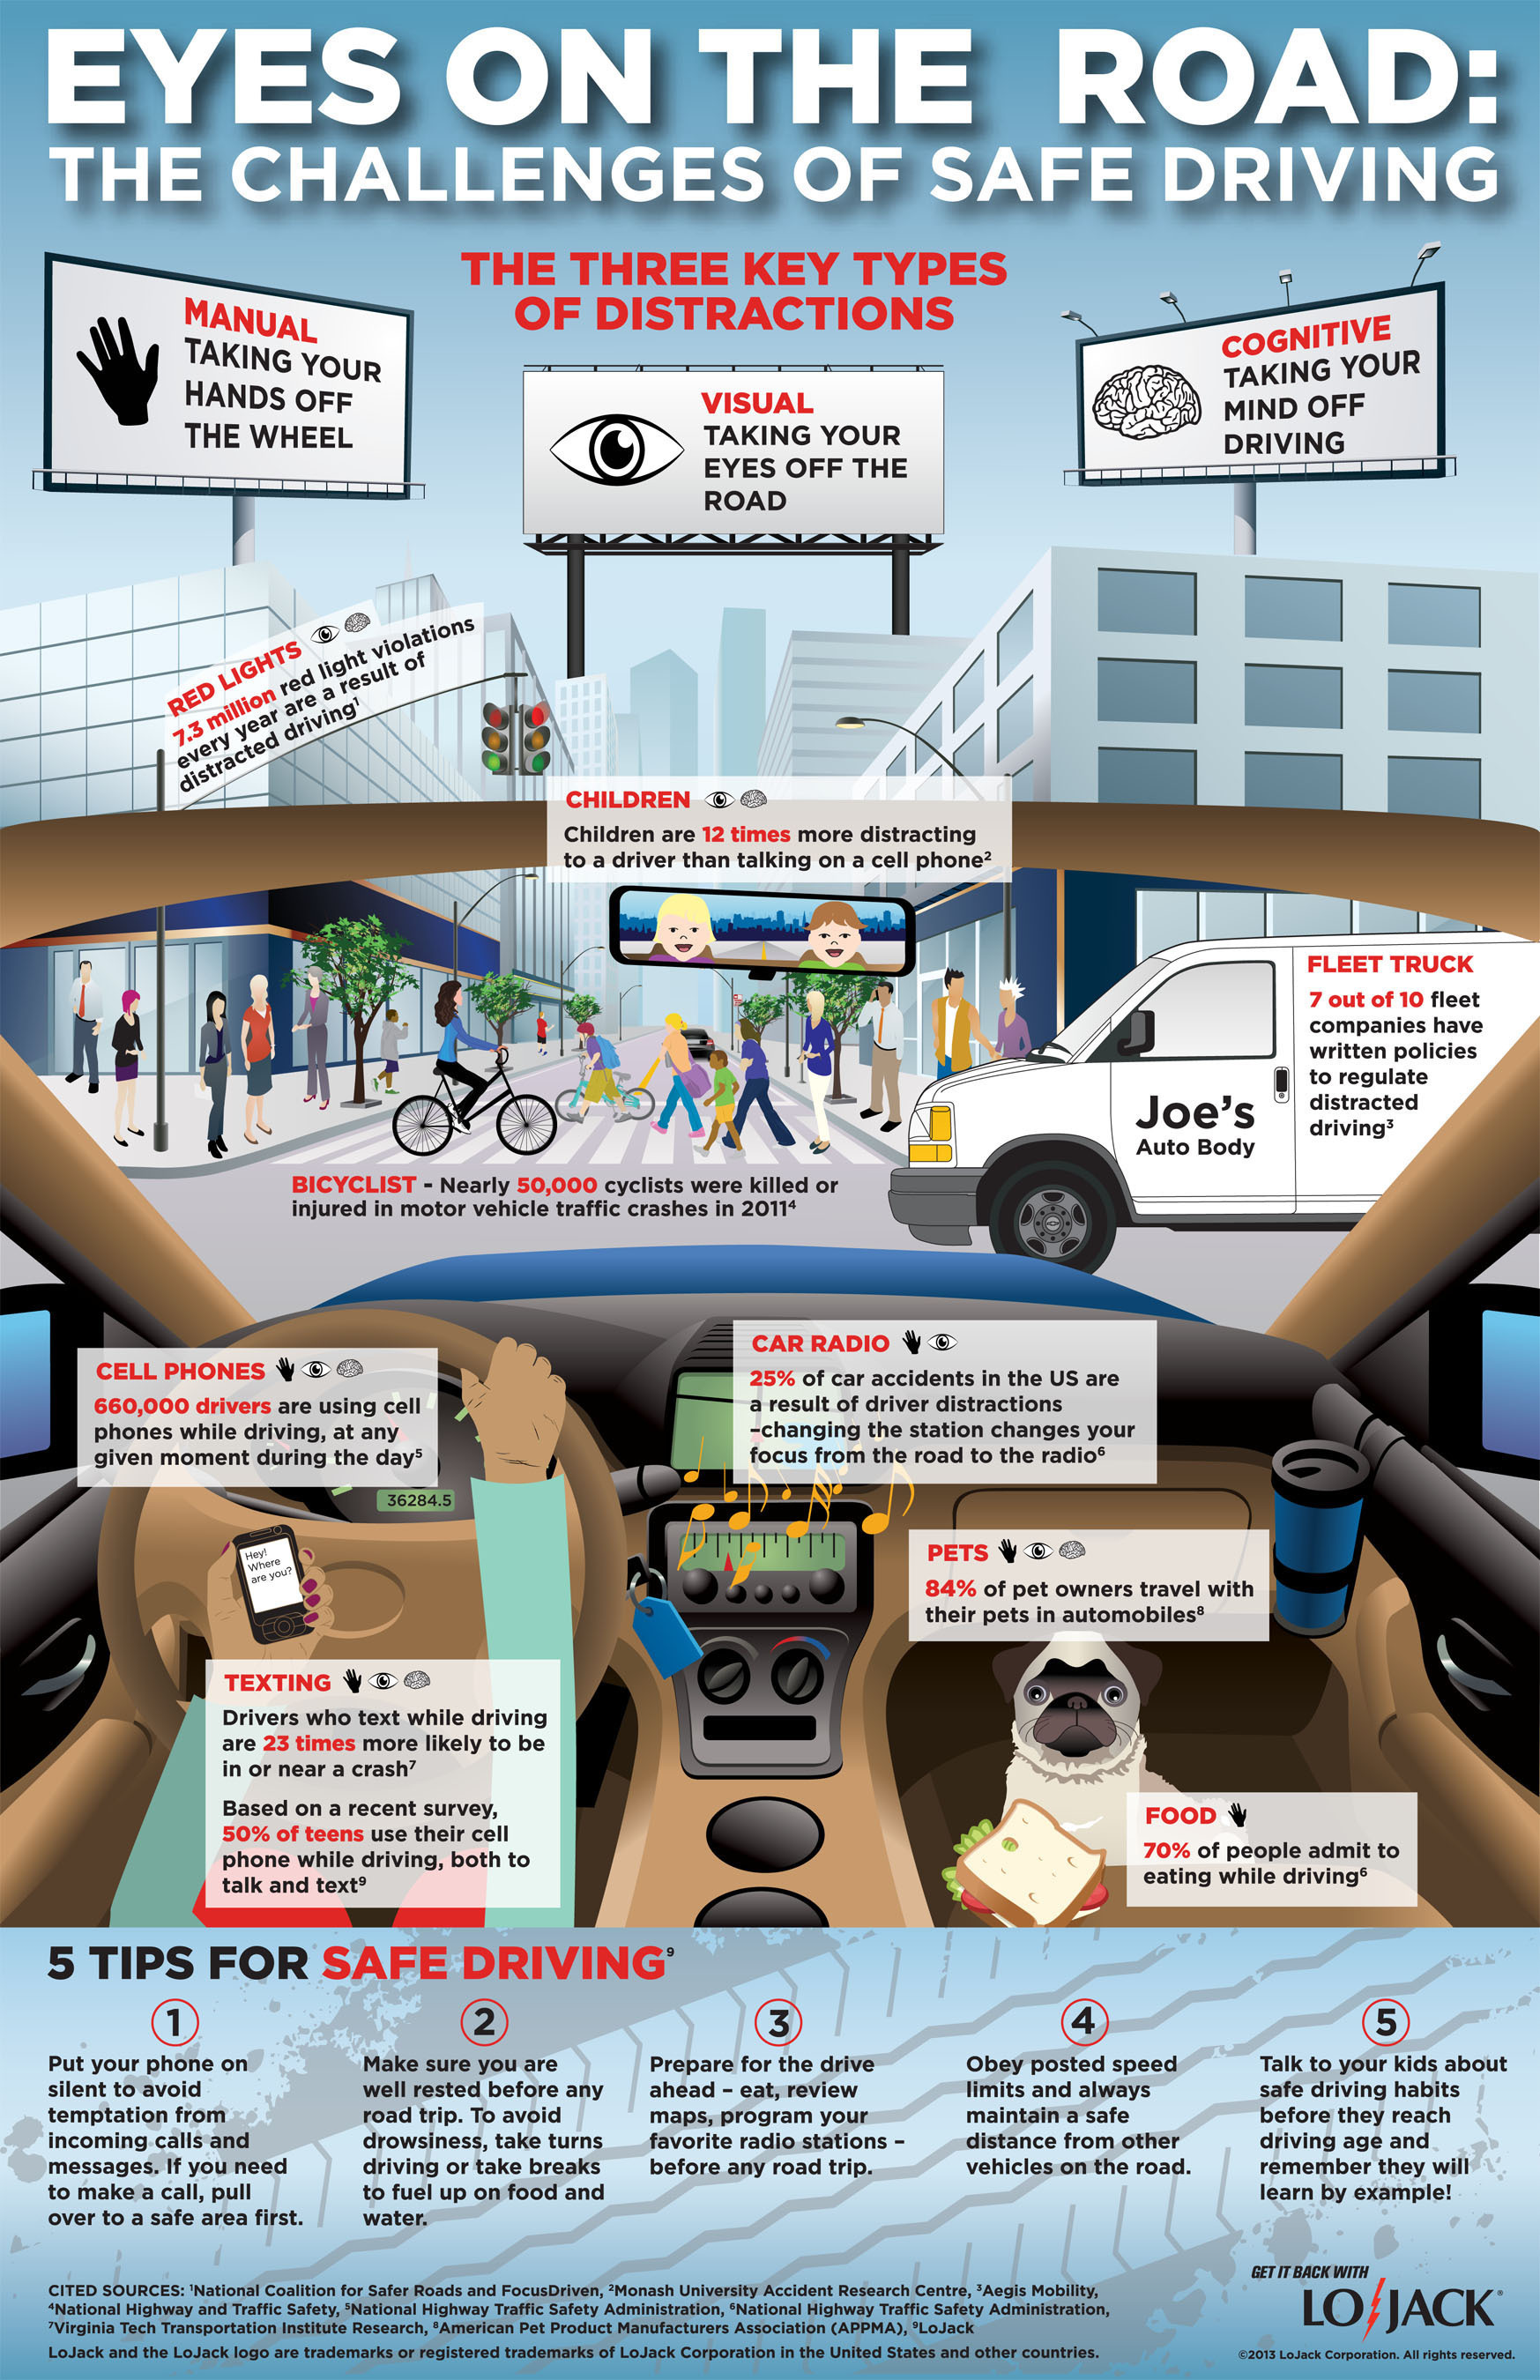 """To raise awareness around safe driving, LoJack has introduced an educational infographic, titled """"Eyes on the Road: The Challenges of Safe Driving,"""" which highlights more than 25 real and tangible distractions that a driver might encounter on any given day - from cell phone use and pets in the front seat to erratic pedestrian behavior and children demanding a driver's attention. (PRNewsFoto/LoJack Corporation) (PRNewsFoto/LOJACK CORPORATION)"""